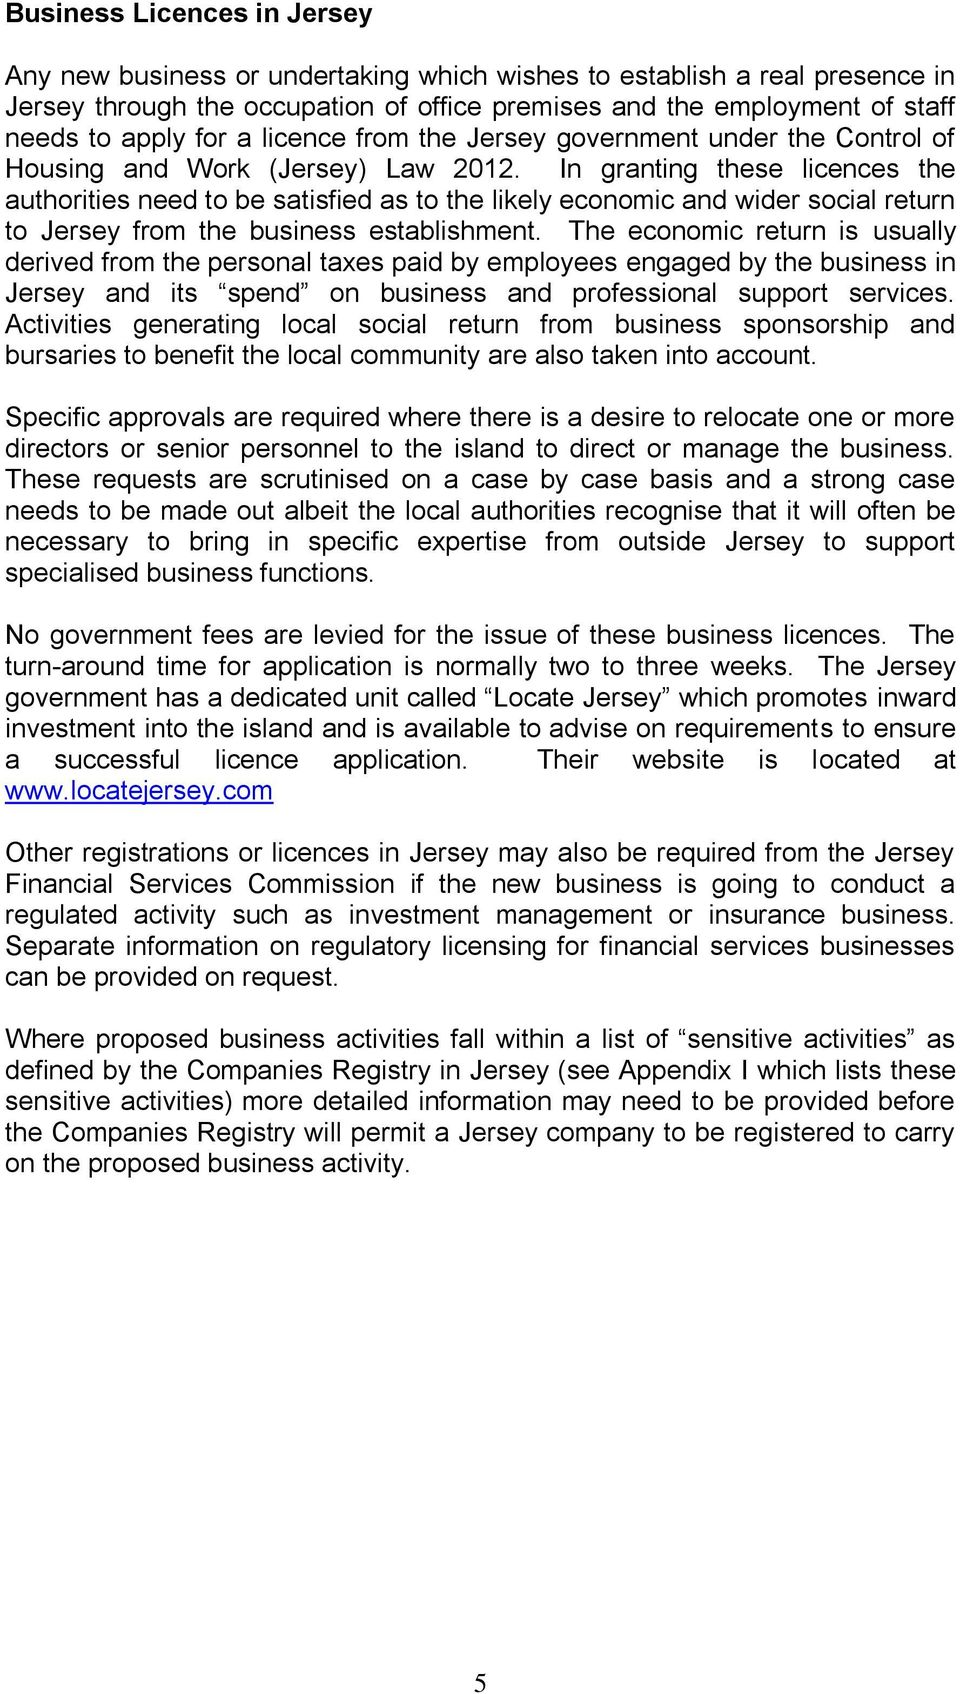 In granting these licences the authorities need to be satisfied as to the likely economic and wider social return to Jersey from the business establishment.